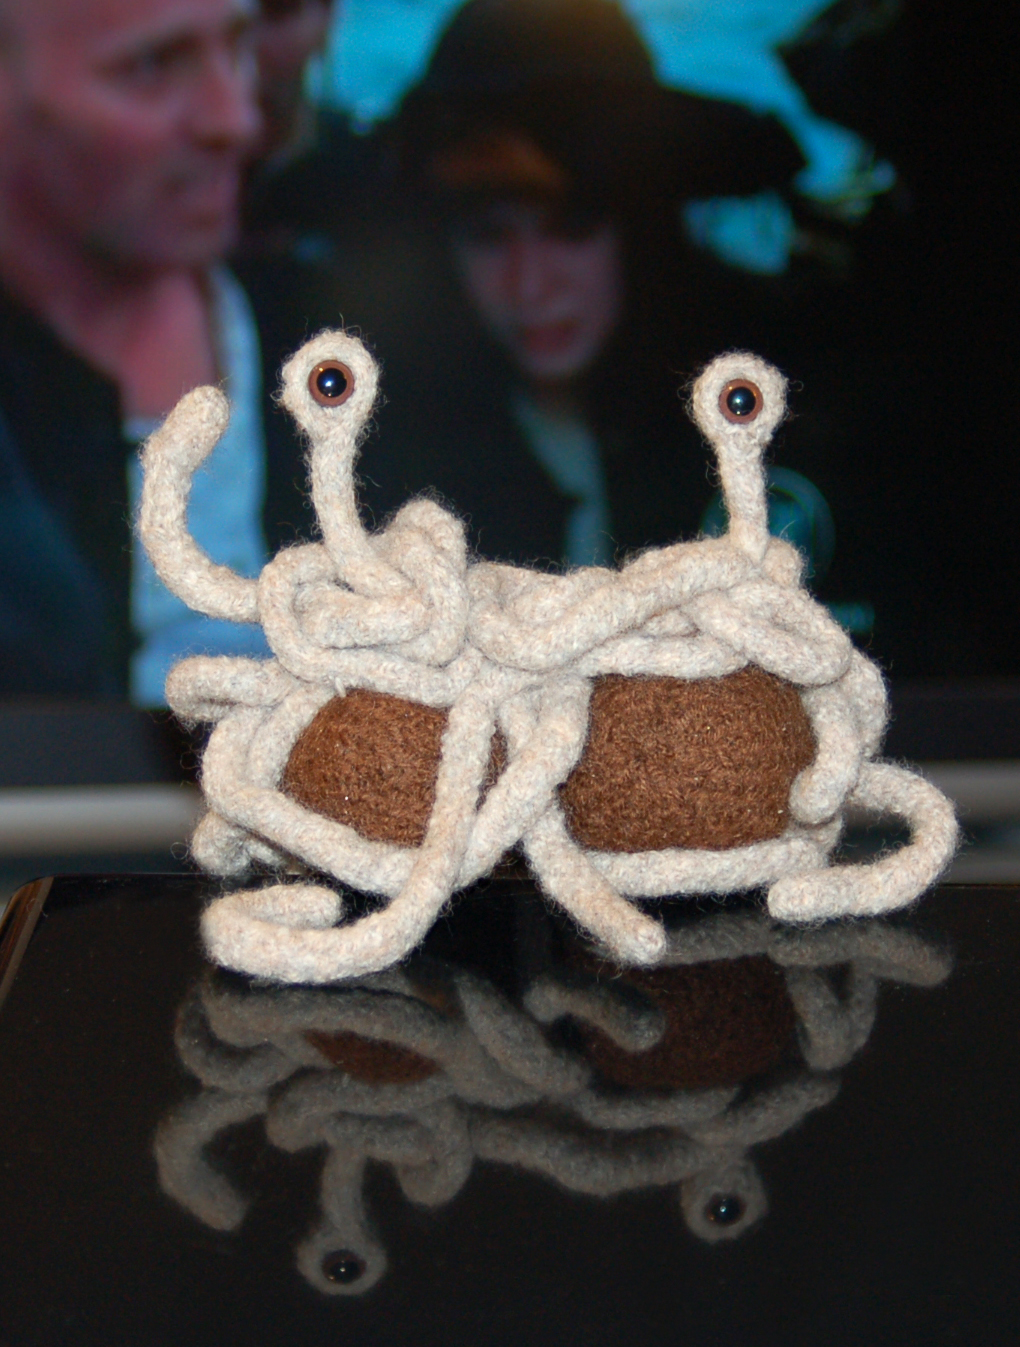 Das fliegende Spaghettimonster, gestrickt. (Quelle: Flickr pockafwye via Wikimedia Commons unter Lizenz CC-BY-SA 2.0)